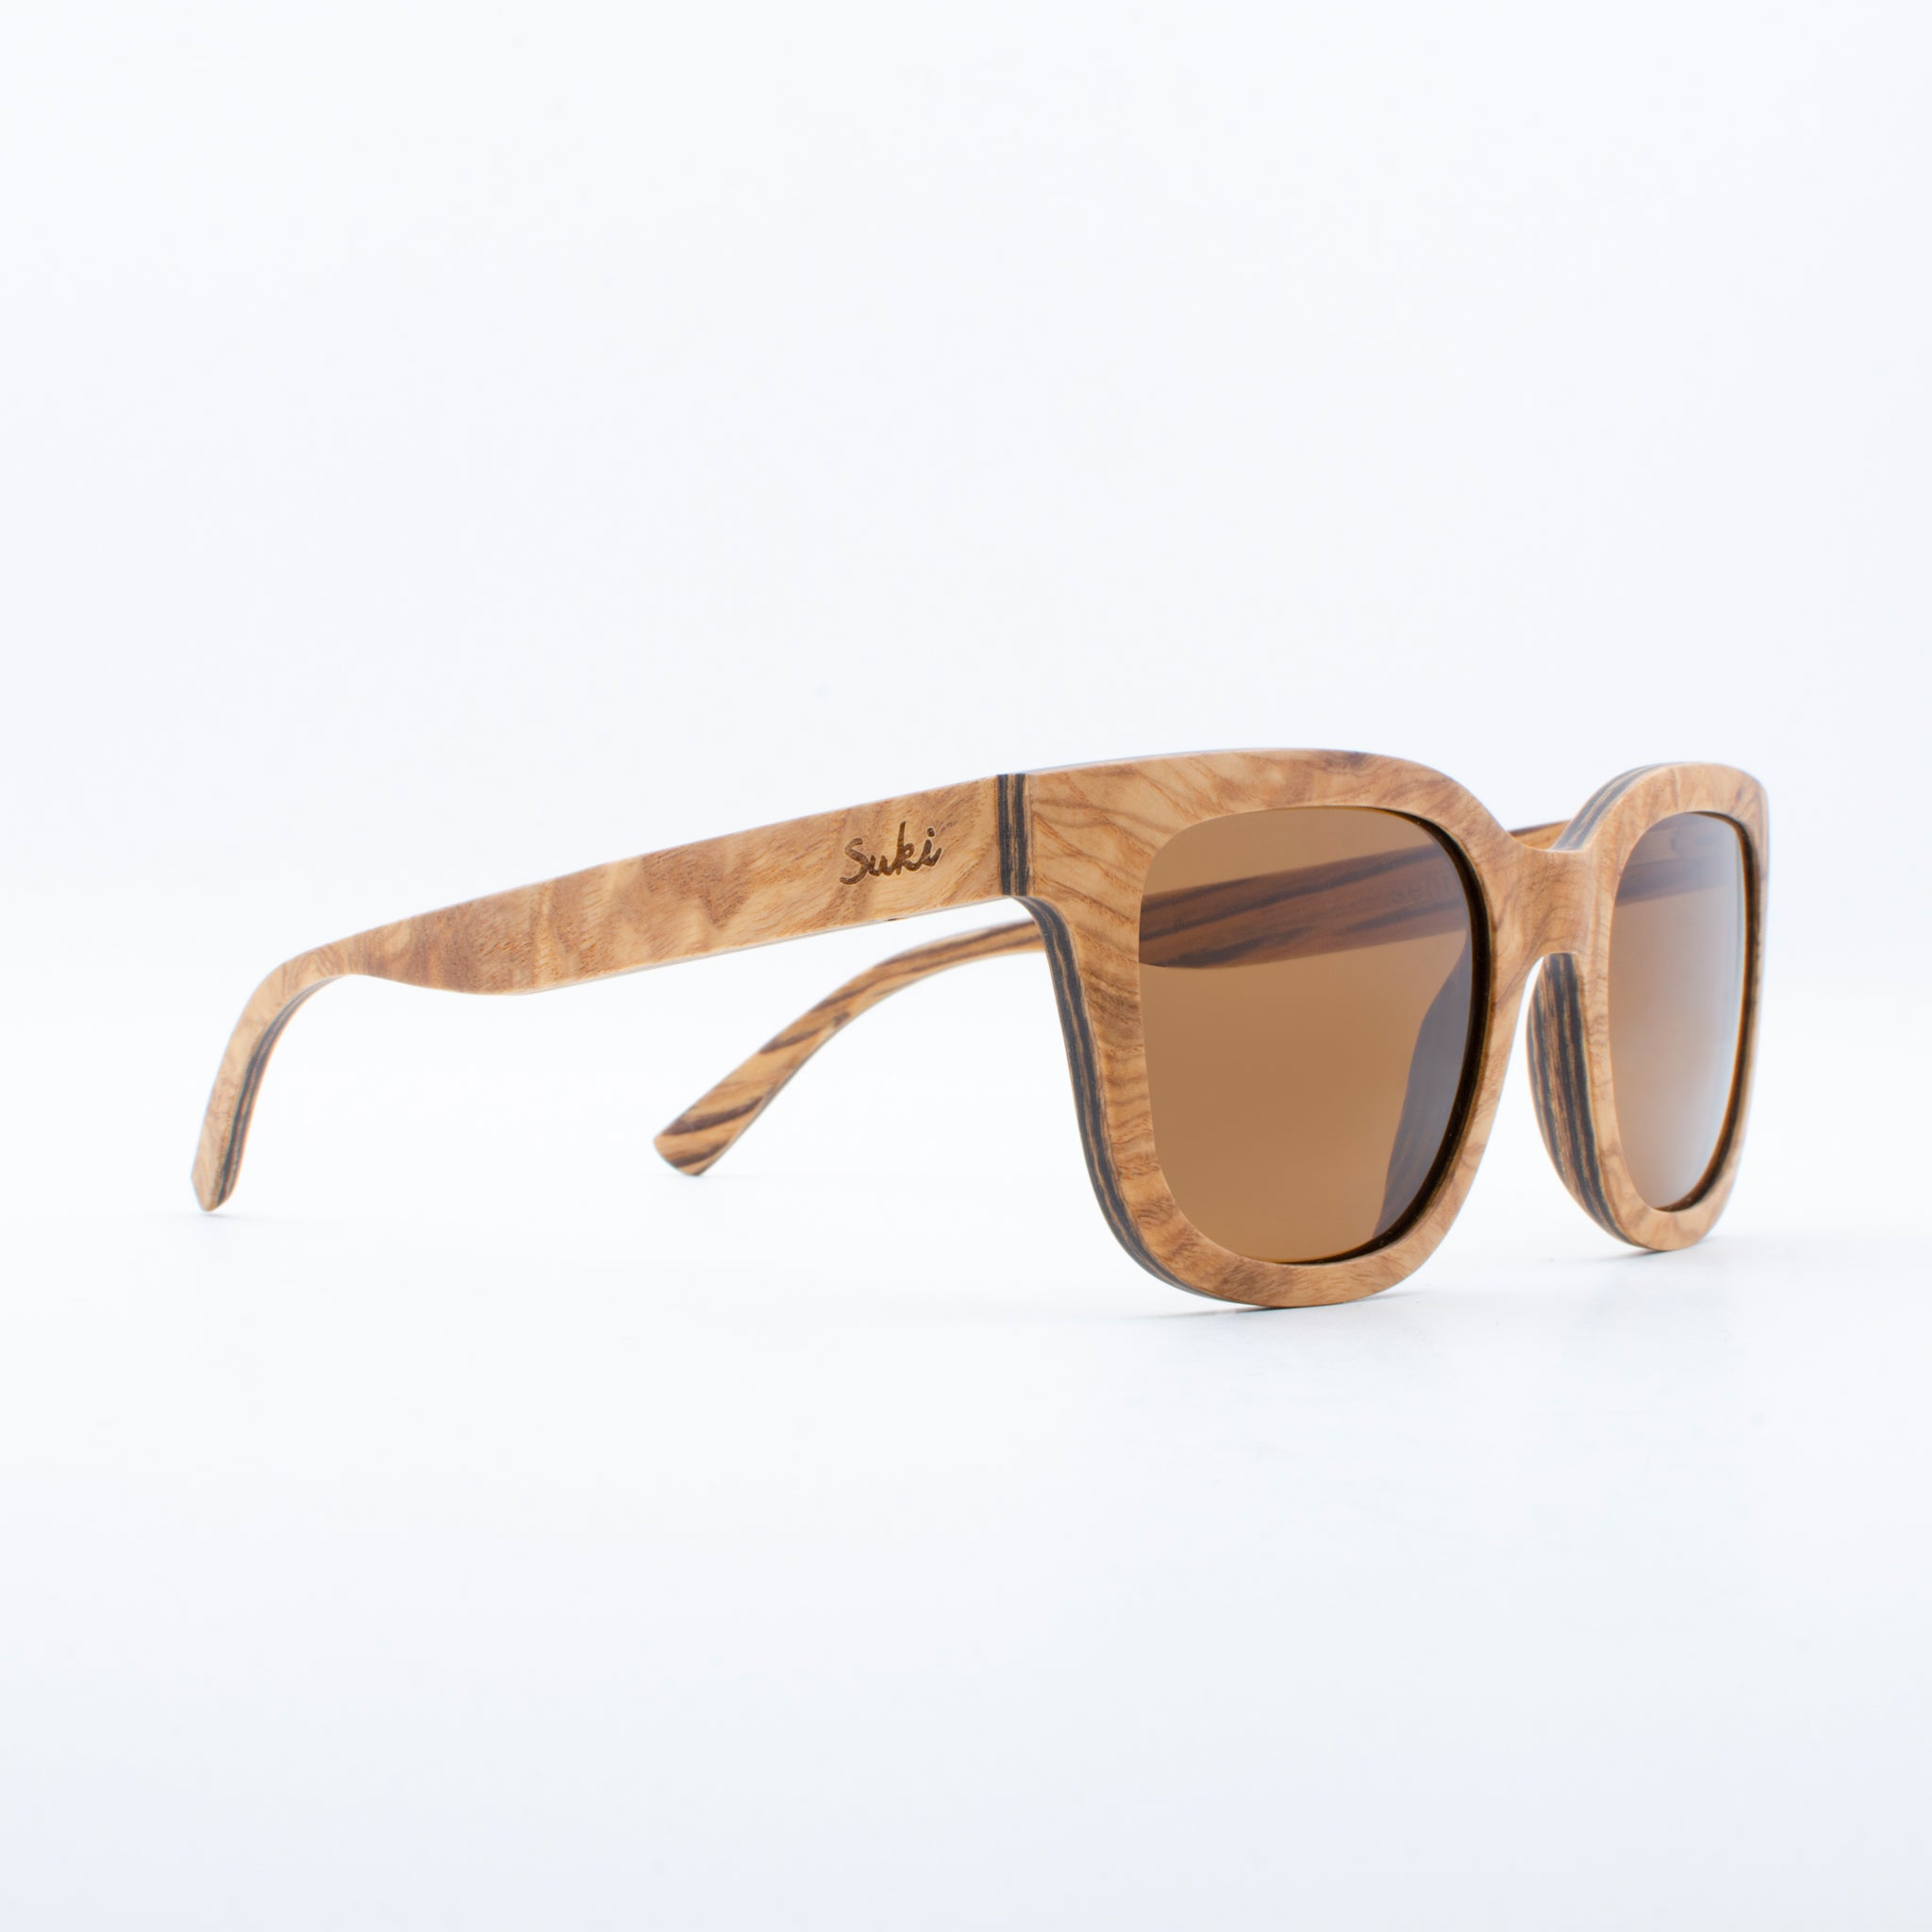 WOODEN SUNGLASSES SENTANI MAPLE SUKI